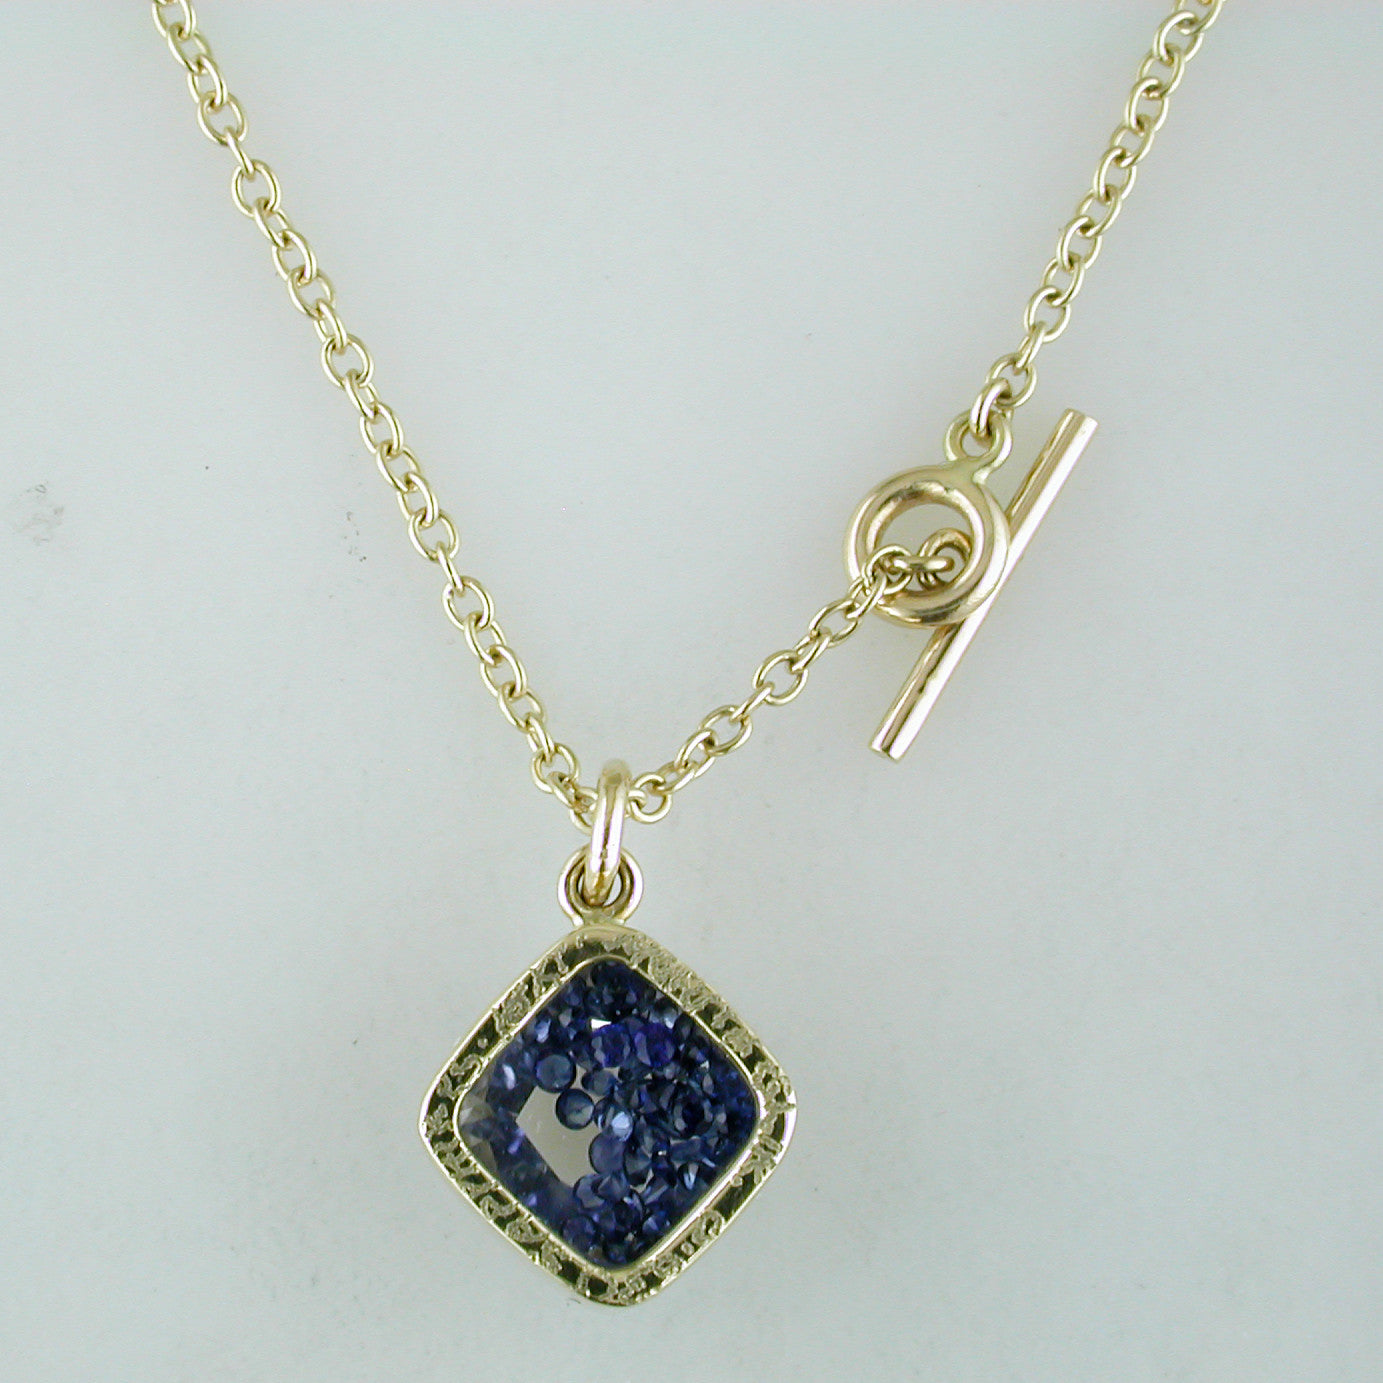 Moritz Glik 18K Yellow Gold Necklace Pendant Enclosed Loose Blue Sapphires